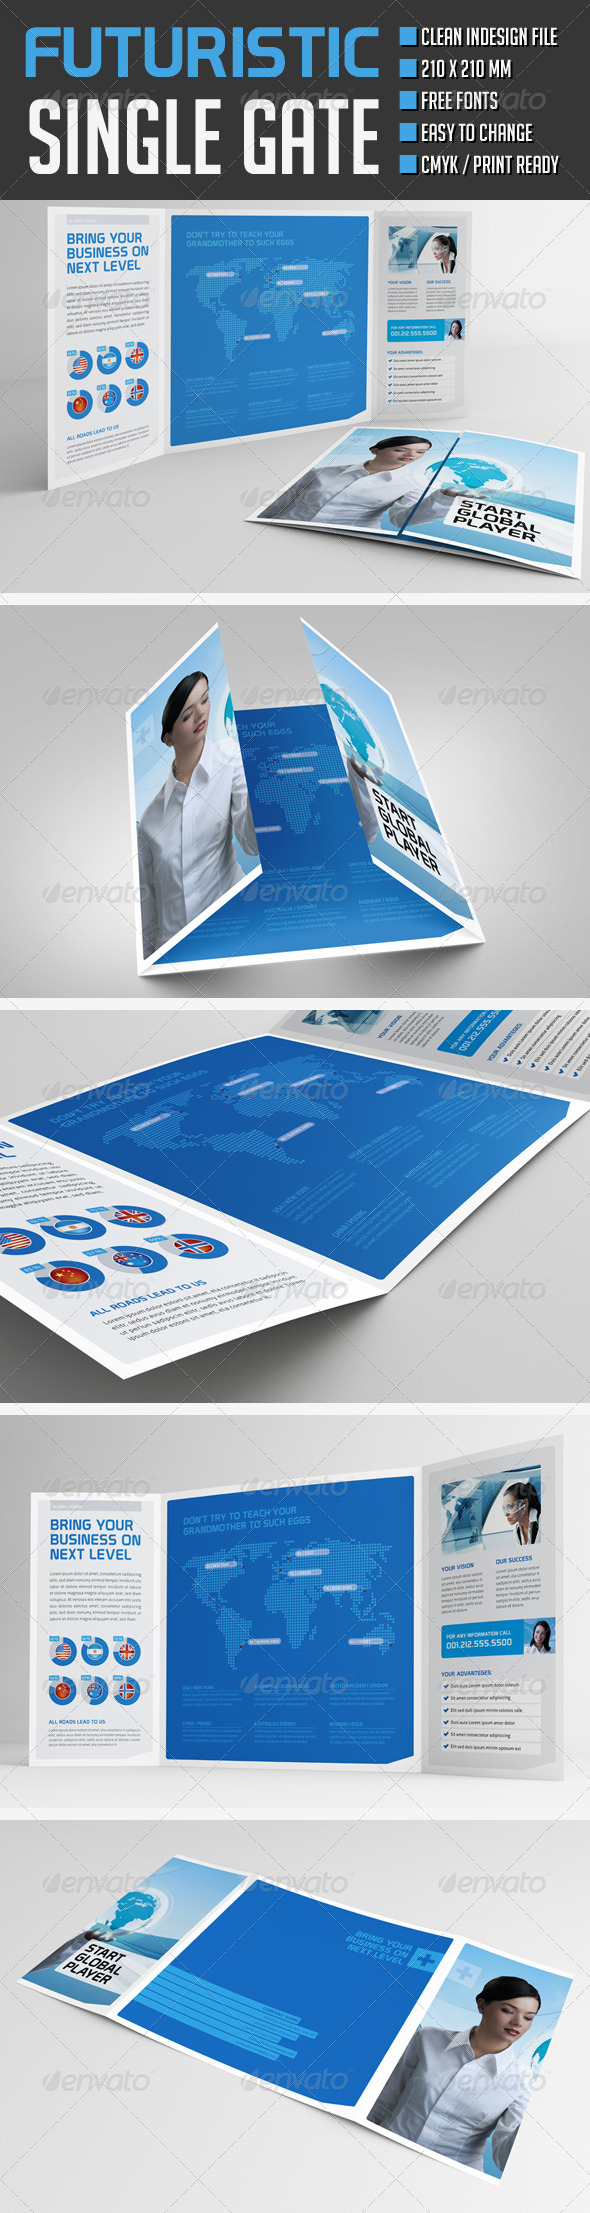 GraphicRiver Futuristic Gate Fold Flyer 8597139